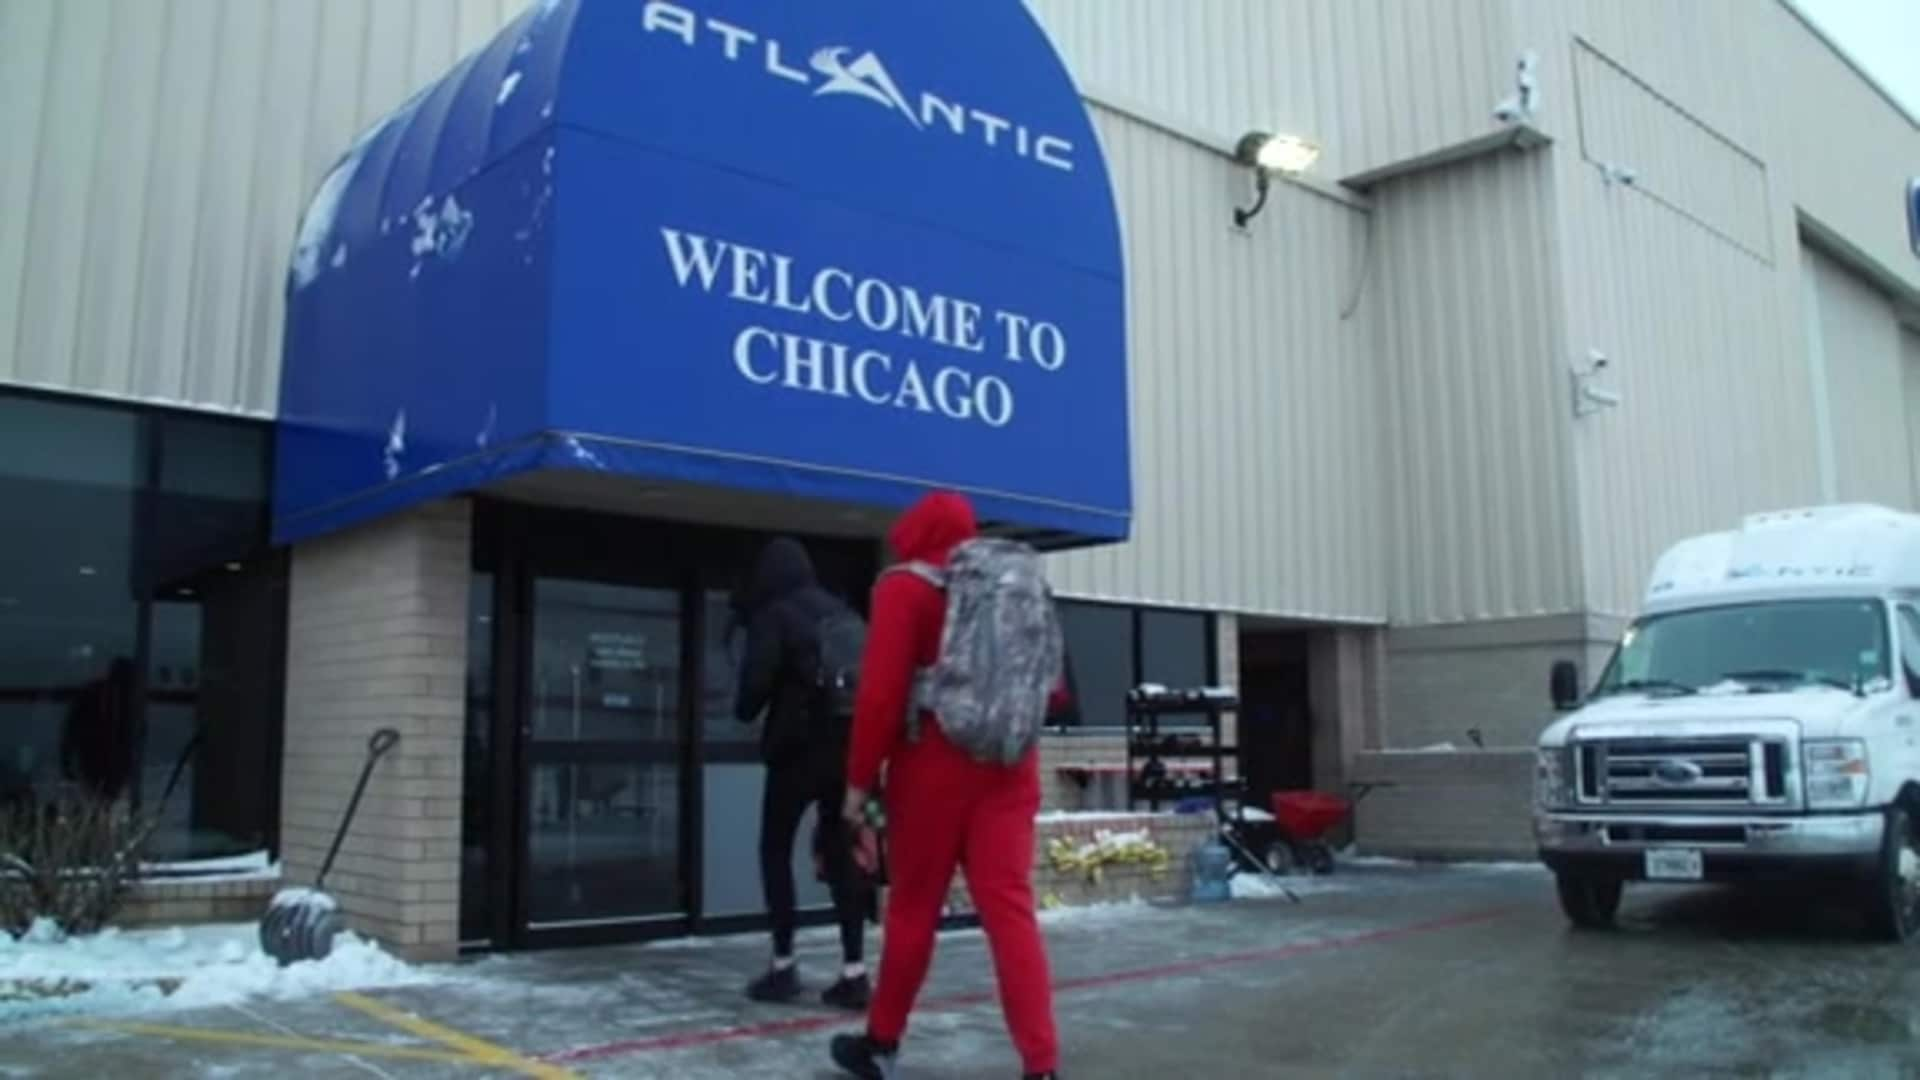 Wizards arrive in Chicago for 2020 NBA All-Star